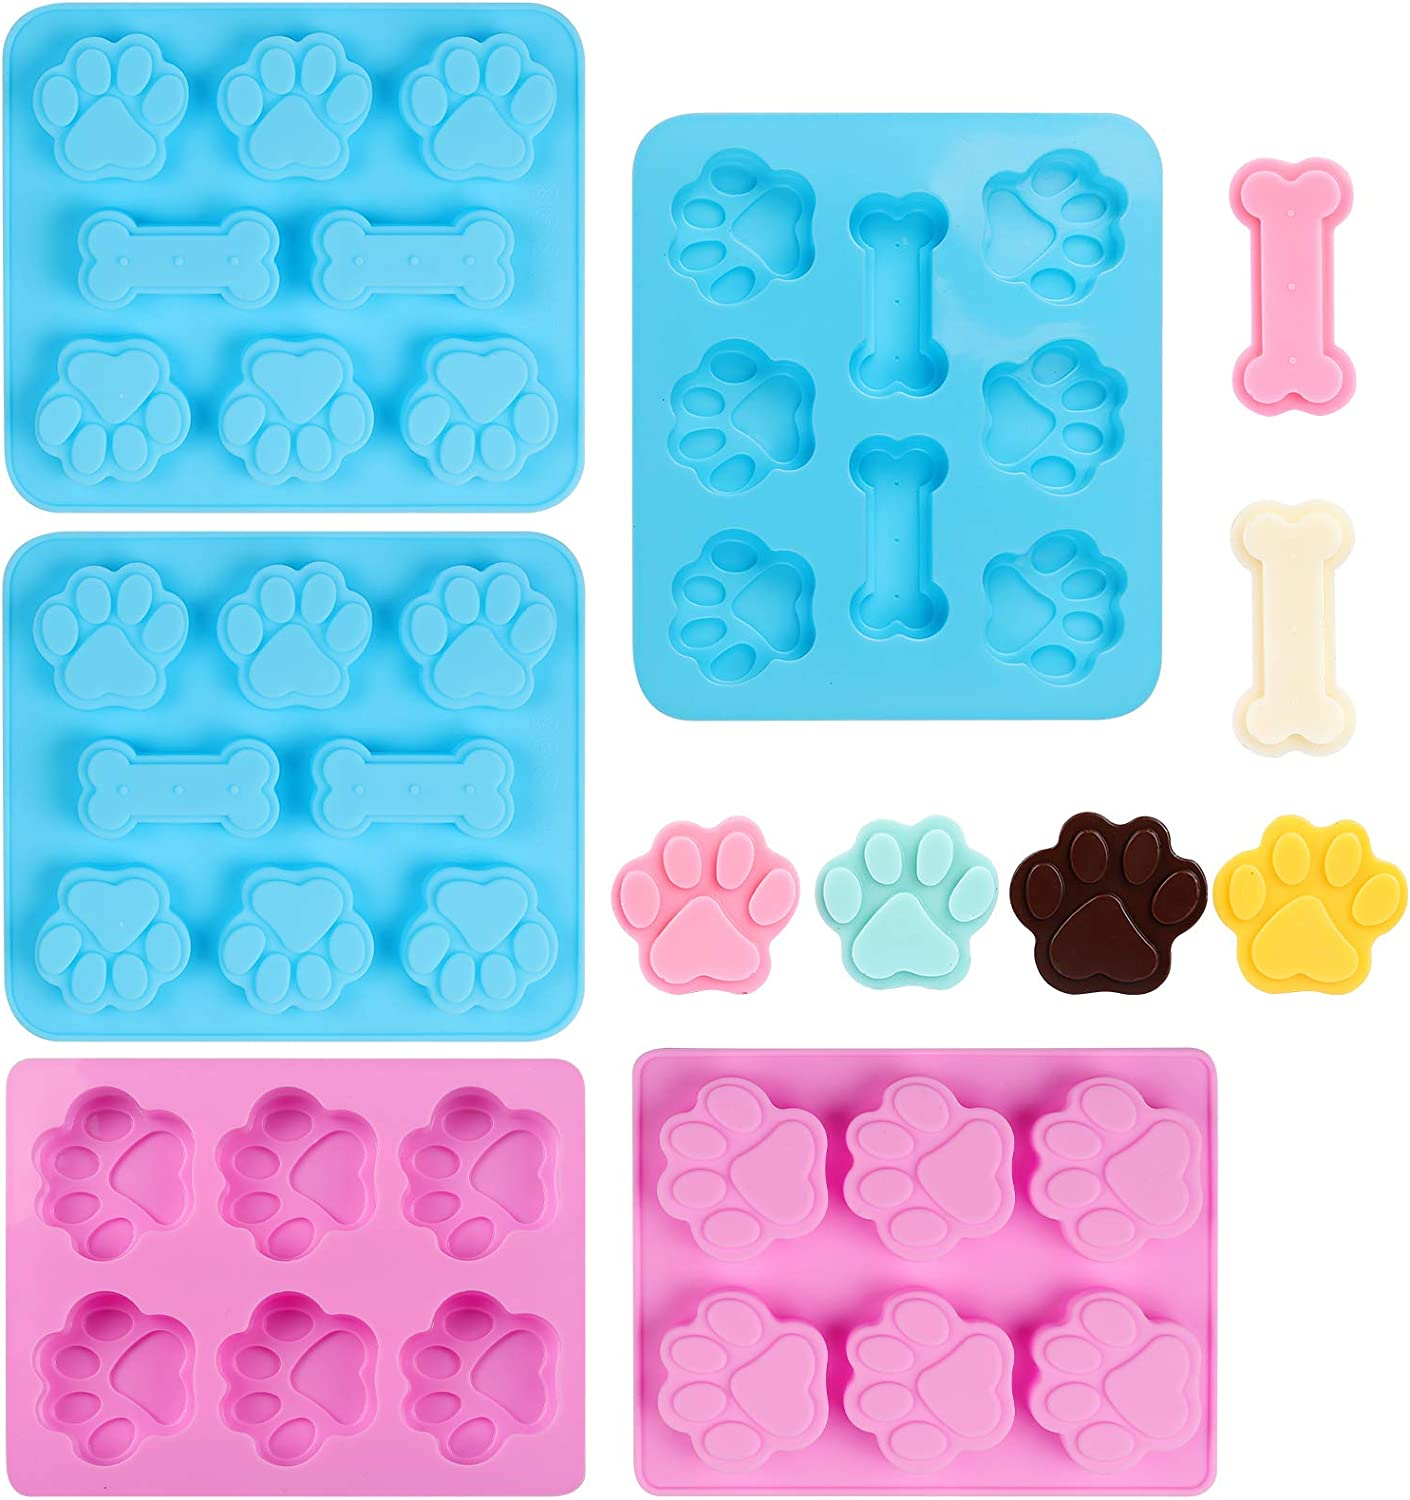 FIRETREESILVERFLOWER Dog Paw And Bone Shaped Silicone Mold, Non-Stick Food Grade, Reusable Silicone Mold For Chocolate, Candy, Cupcakes, Pudding, Jelly, Puppy Biscuits (5 PCS)